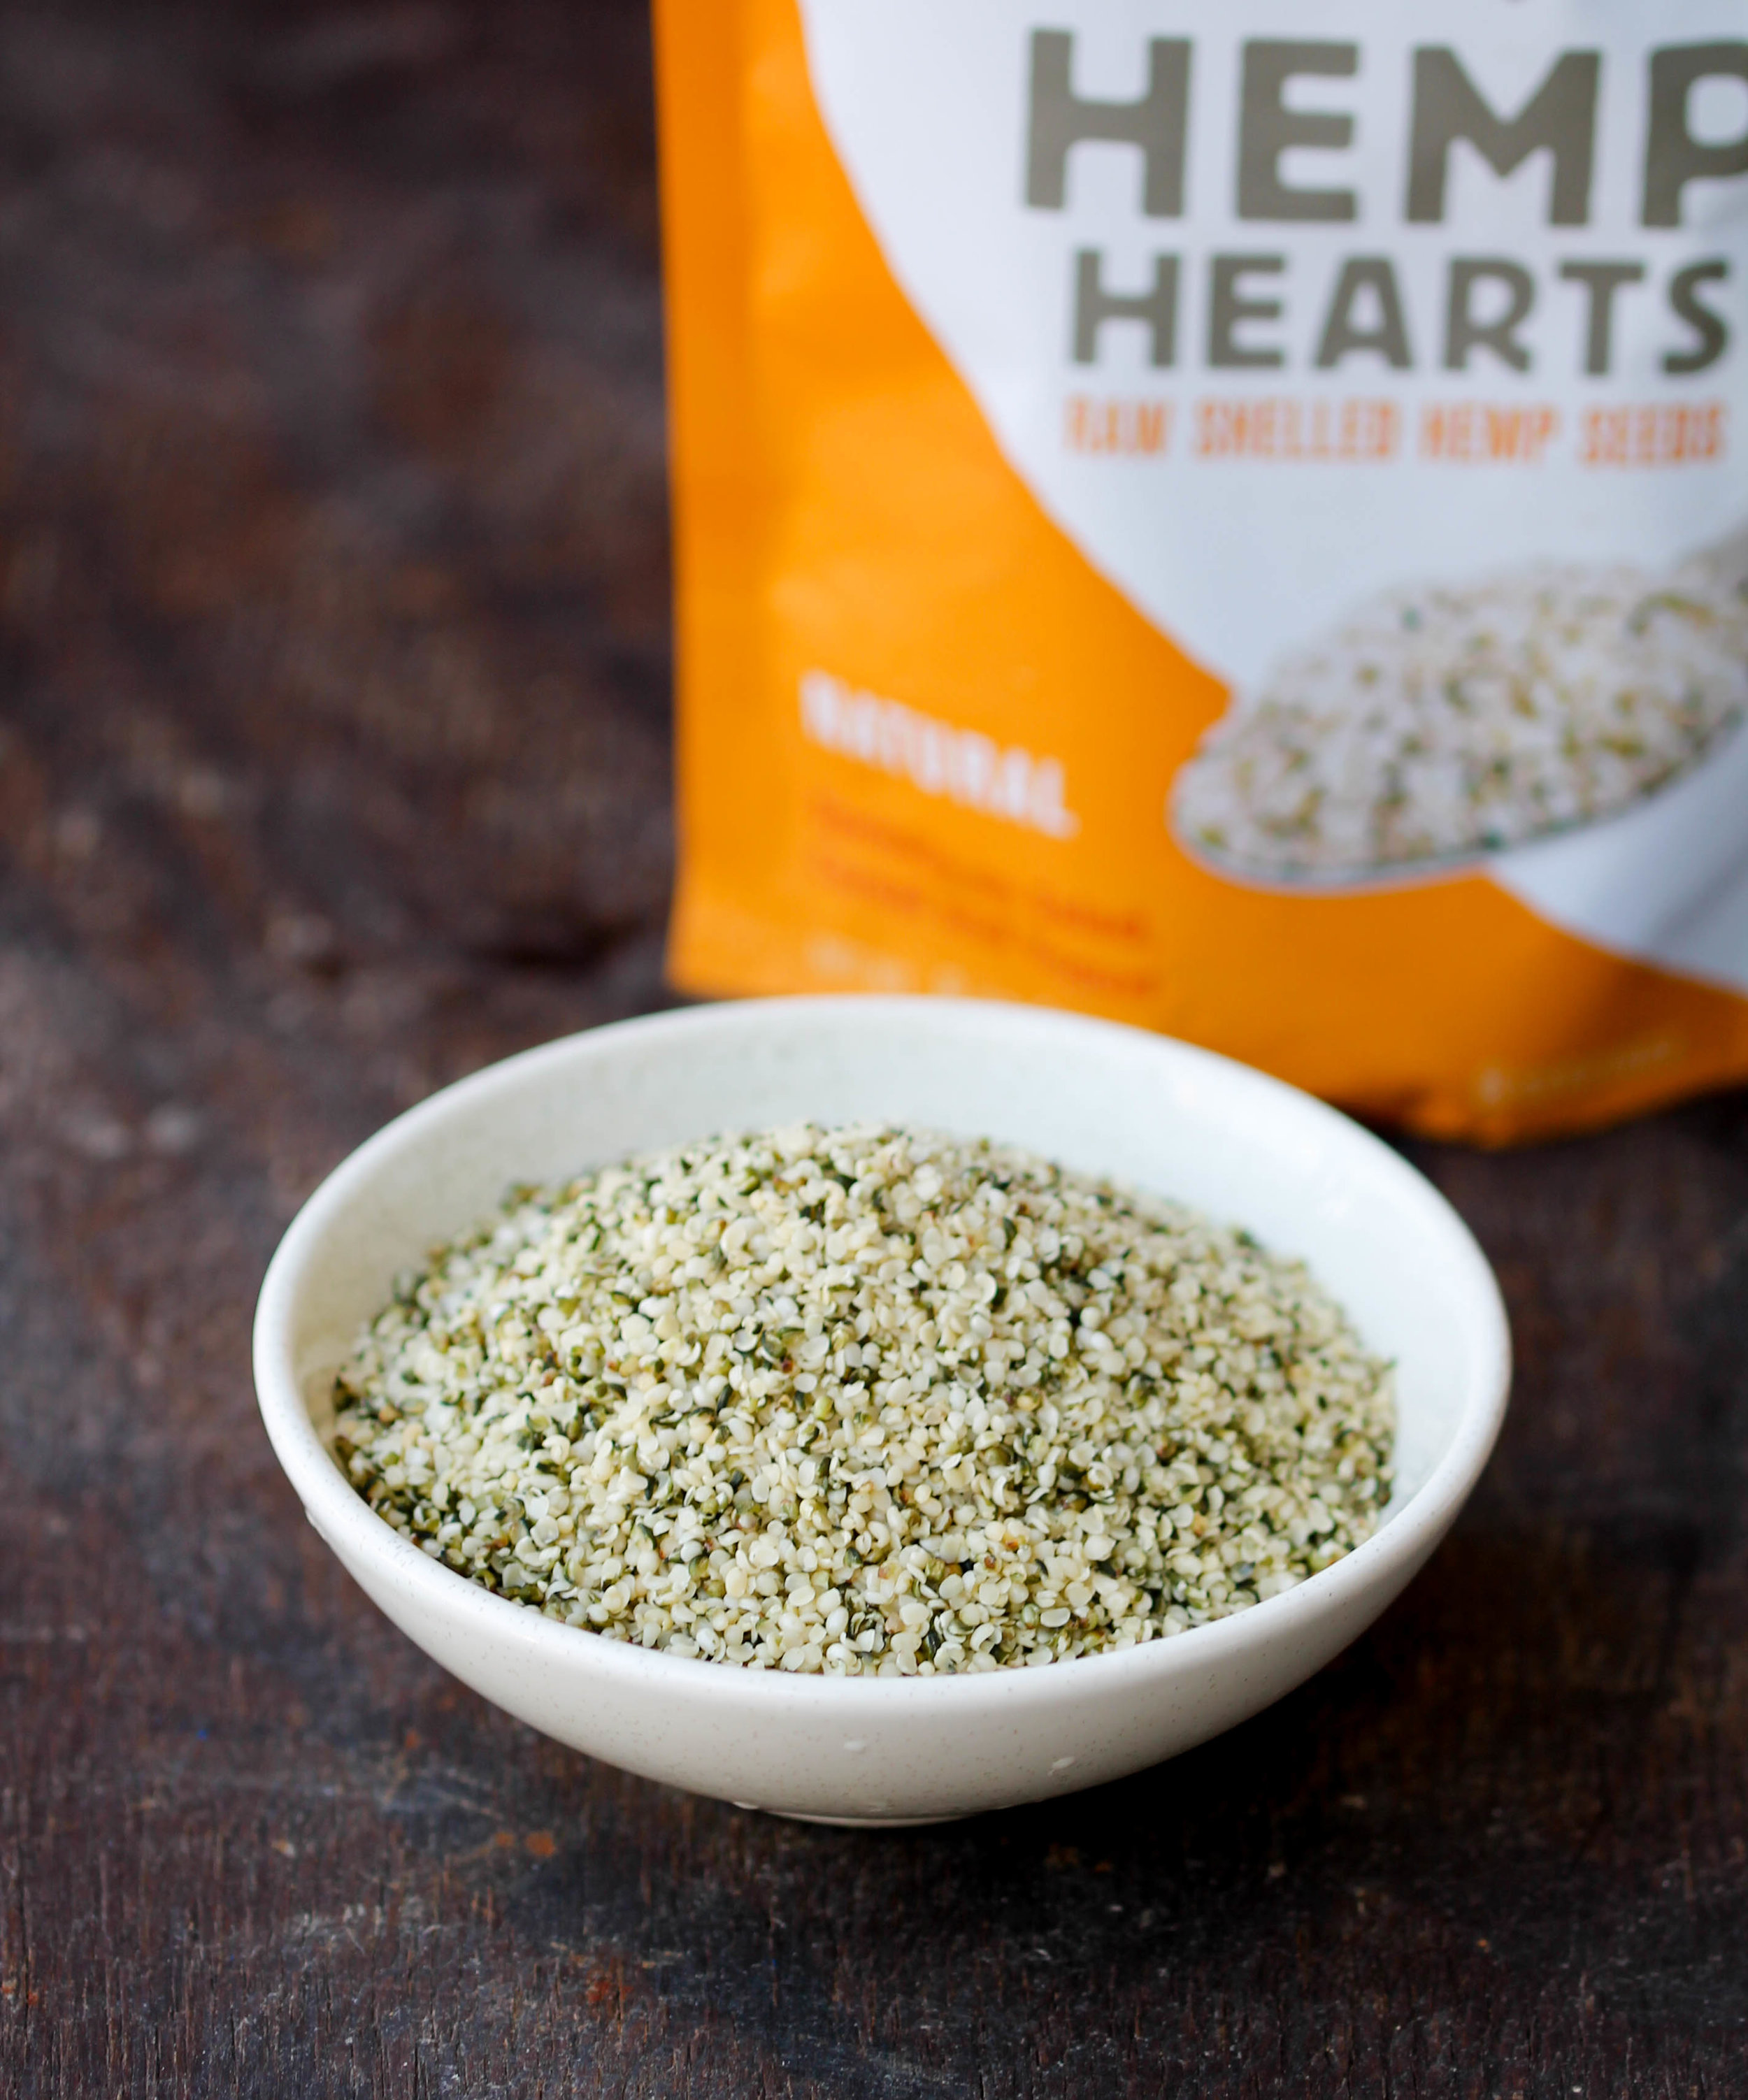 Easy, Versatile Hemp Crusted Tofu can be made under an hour! Packed with protein, omega-3 fatty acids, calcium, and other nutrients, Hemp Crusted Tofu can be enjoyed with salad, rice, or noodles, both hot or cold.